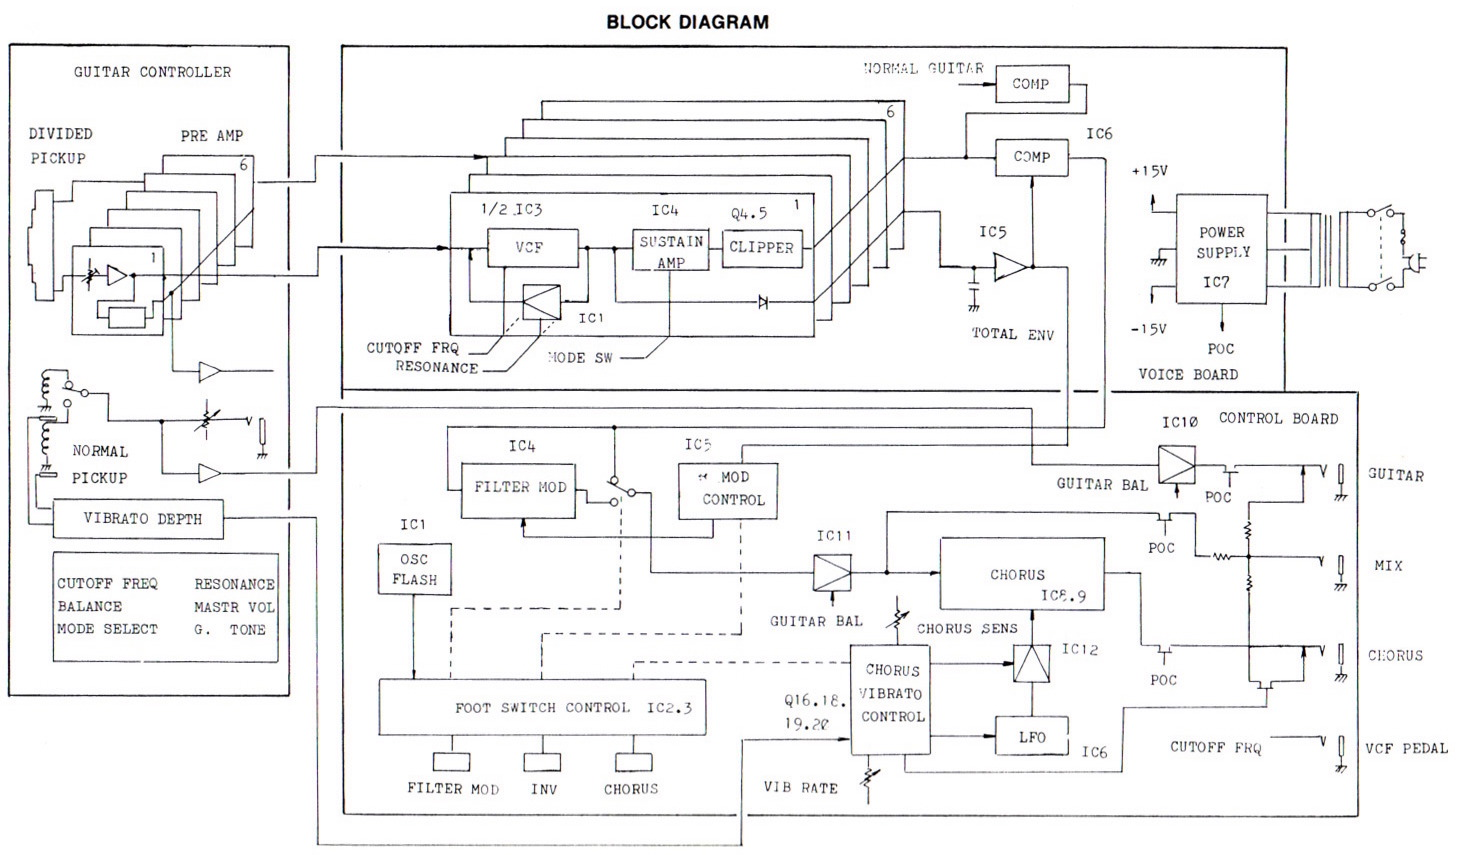 Roland Gr 100 Vintage Electronic Guitar Synthesizer Schematics How Do I Change The Frequency Of This Vibratocircuit Block Diagram Click To Enlarge